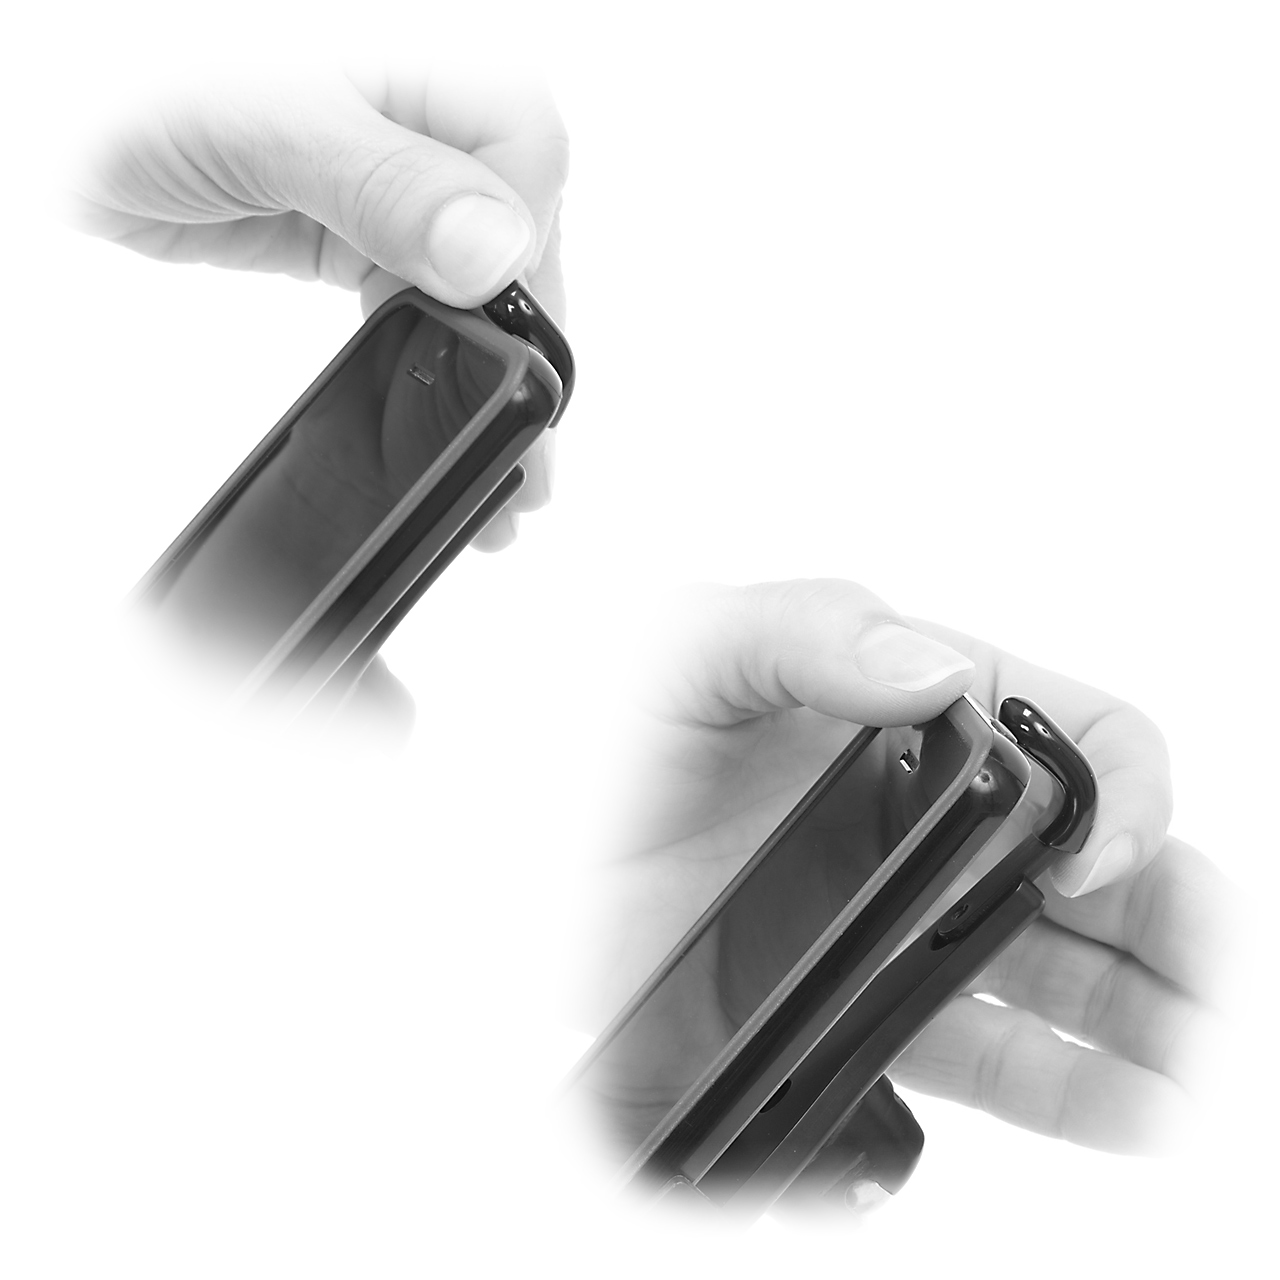 Once adjusted to your configuration, a snap like removal and insertion to and from the holder is simple.